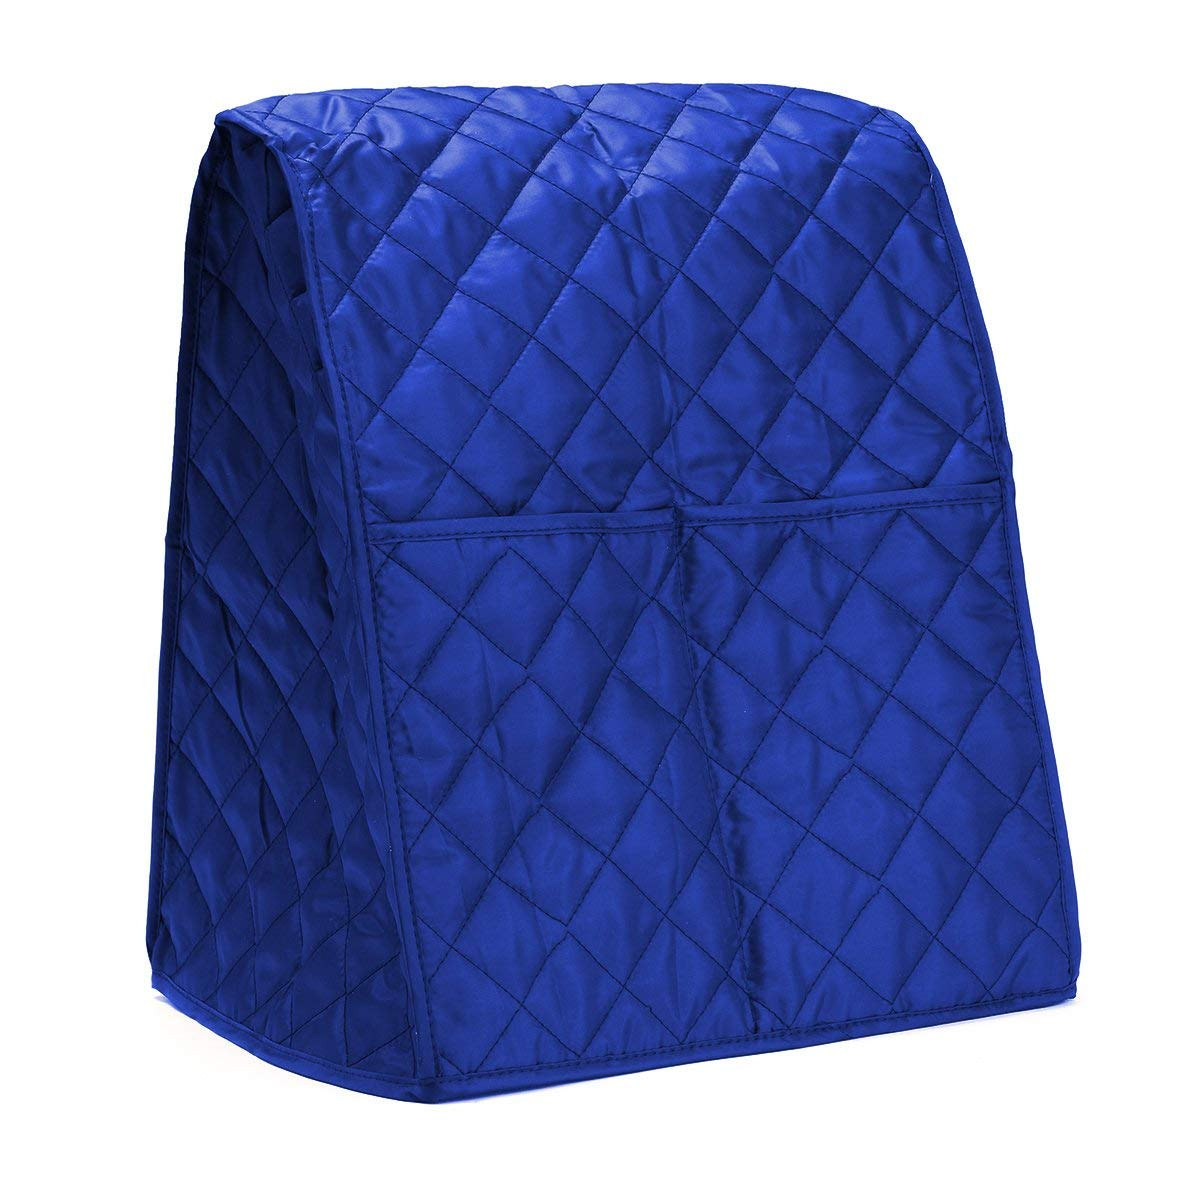 SAFETYON Kitchen Aid Mixer Covers Stand Mixer Cover 3 Color Cloth Quilted Pocket Blender Dust-proof Cover with Organizer Bag for Kitchenaid Blue